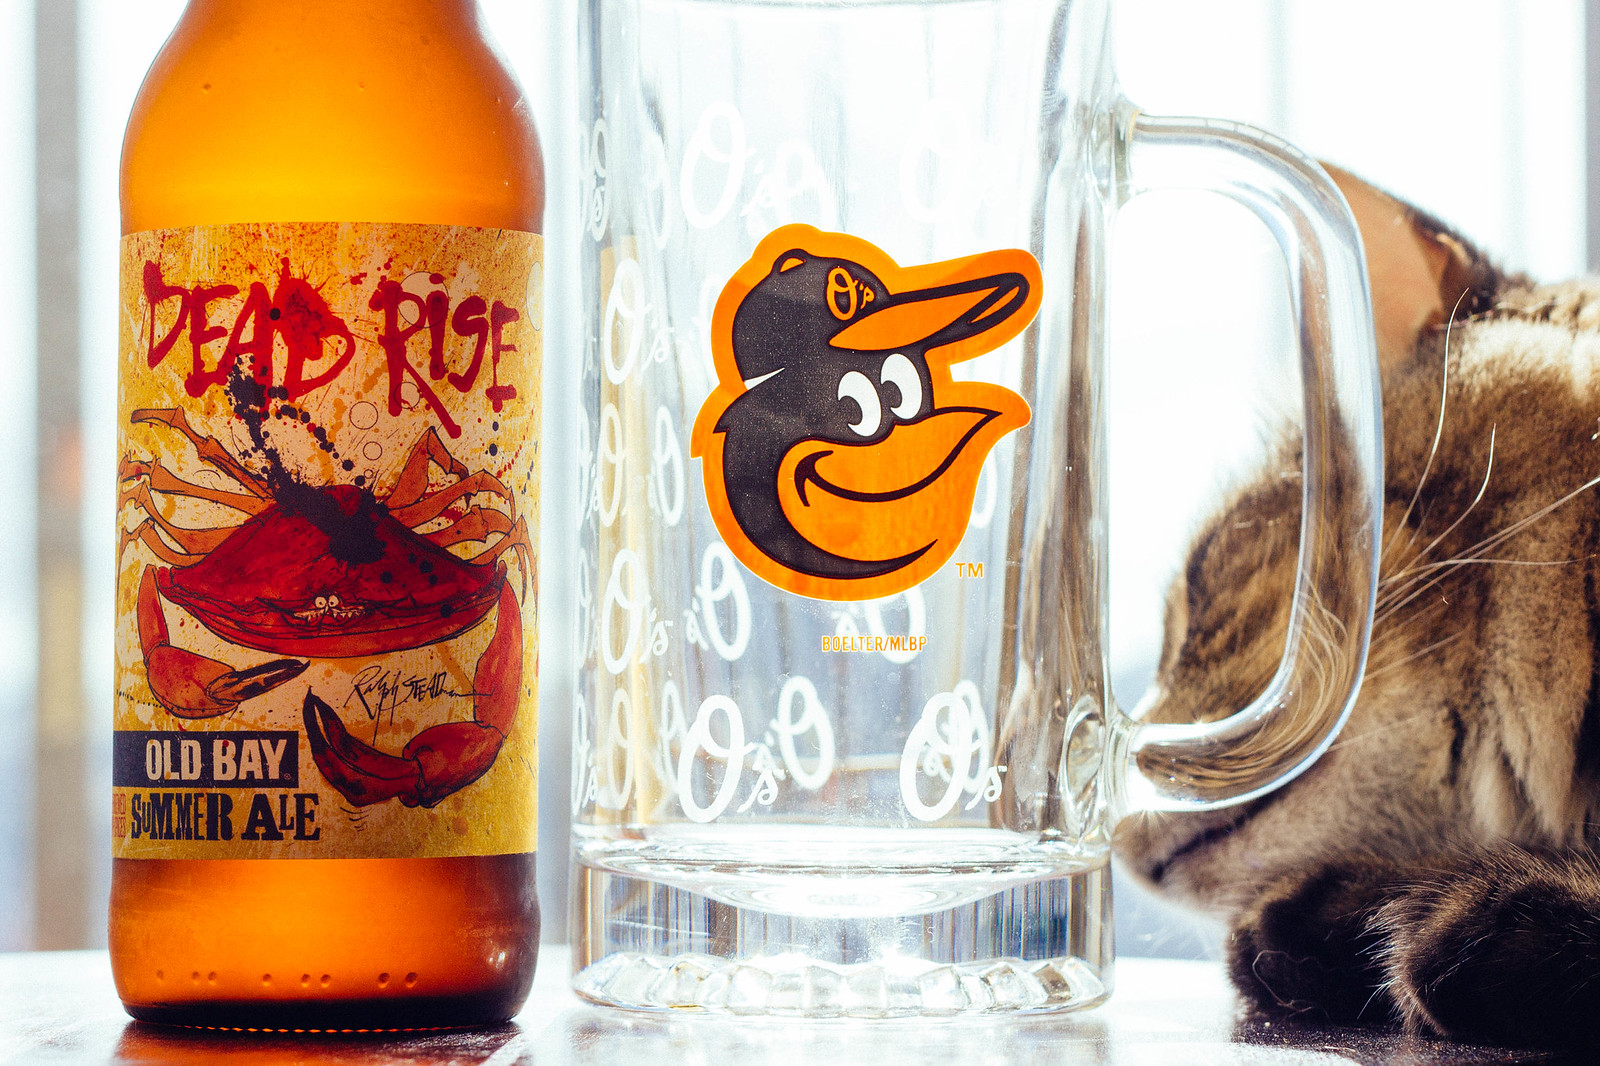 Willow investigates Flying Dog's Dead Rise Old Bay Summer Ale